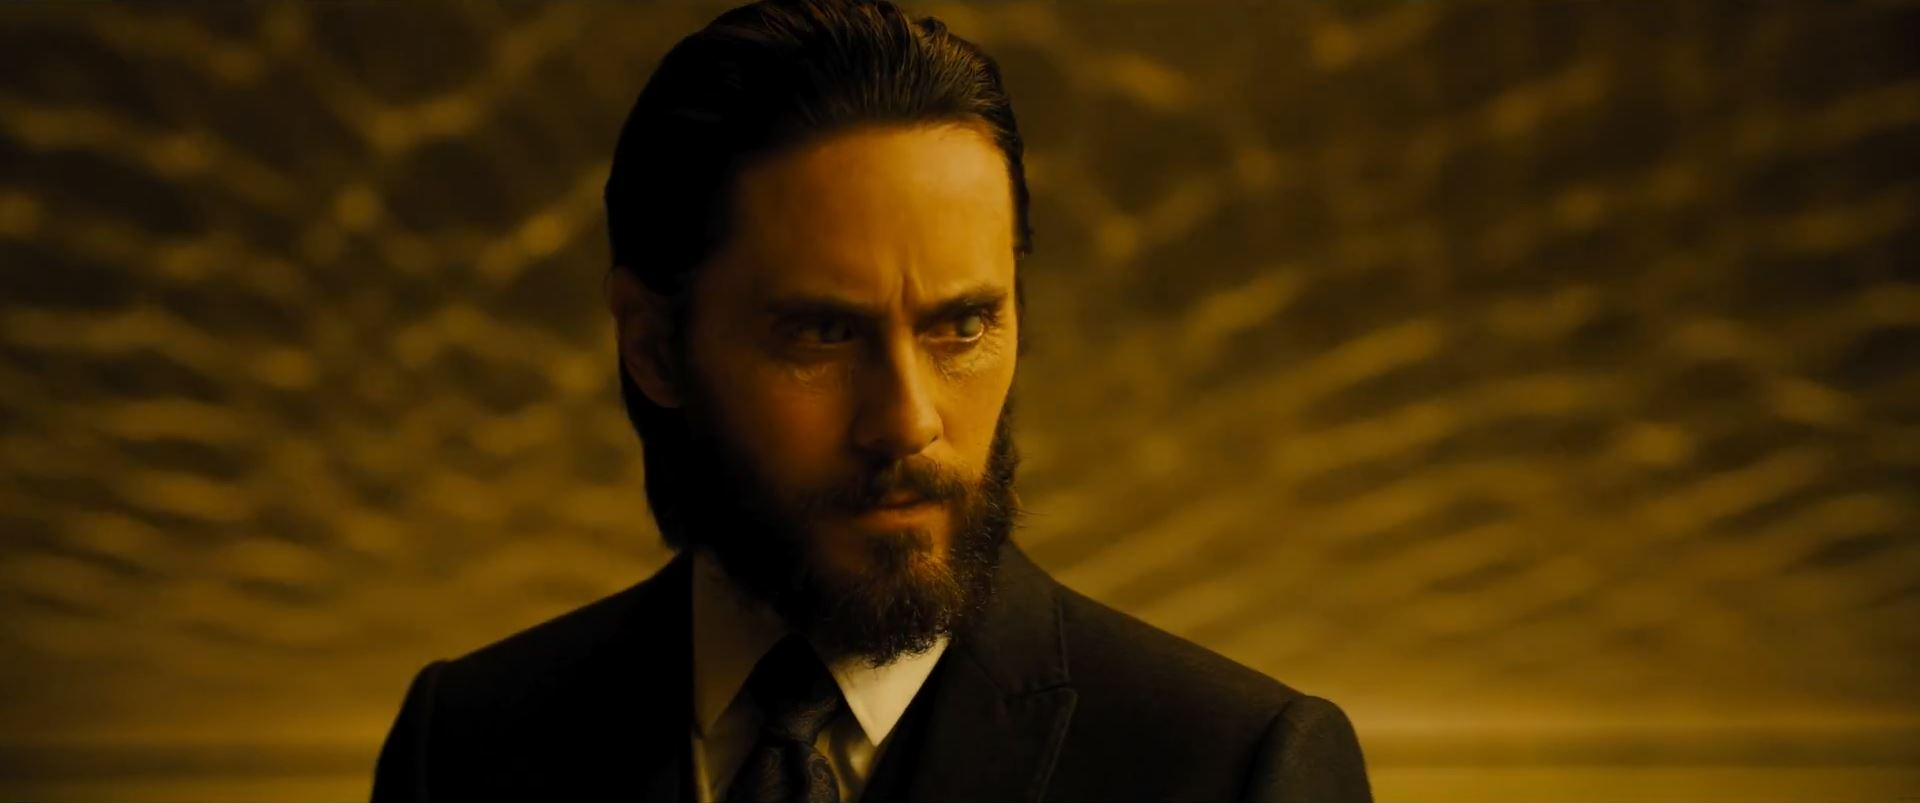 Jared Leto as Niander Wallace in Blade Runner 2049